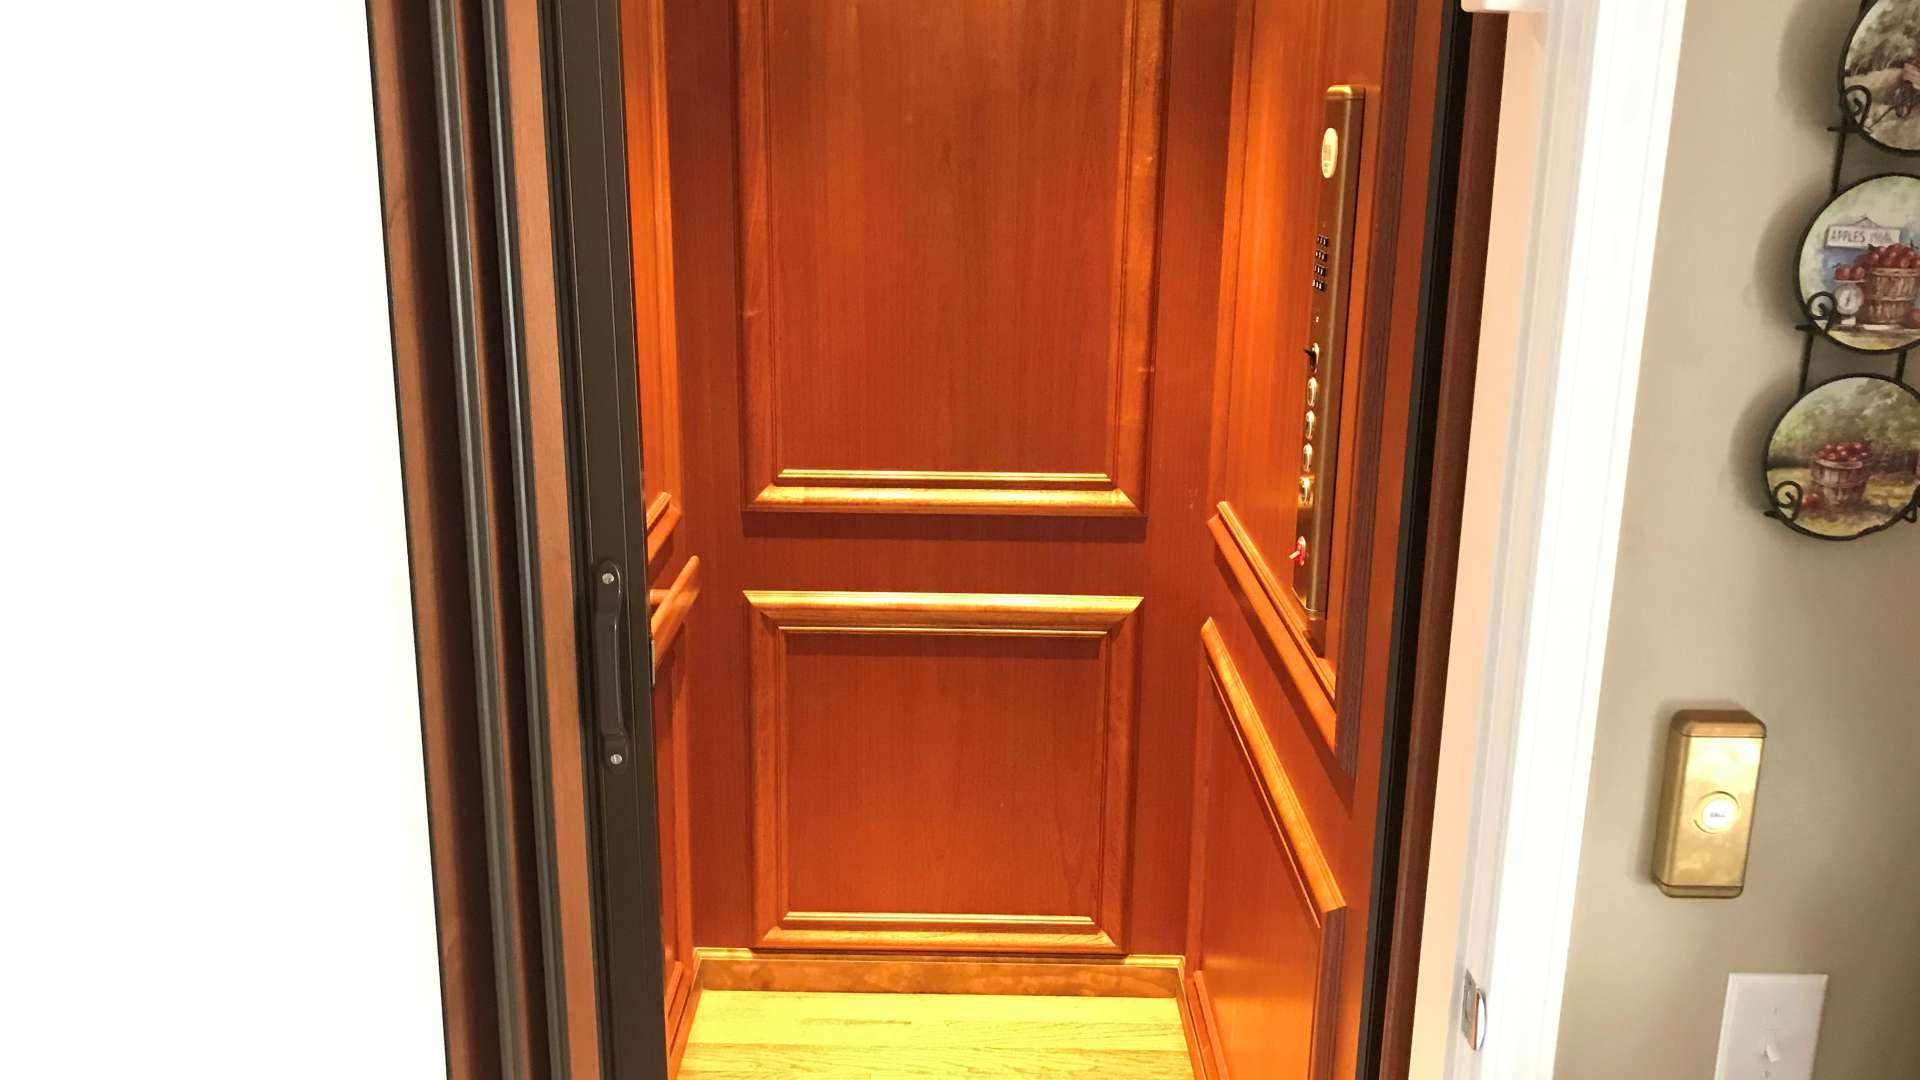 Extra wide doorways and an elevator make all floors easily accessible without having to climb stairs.